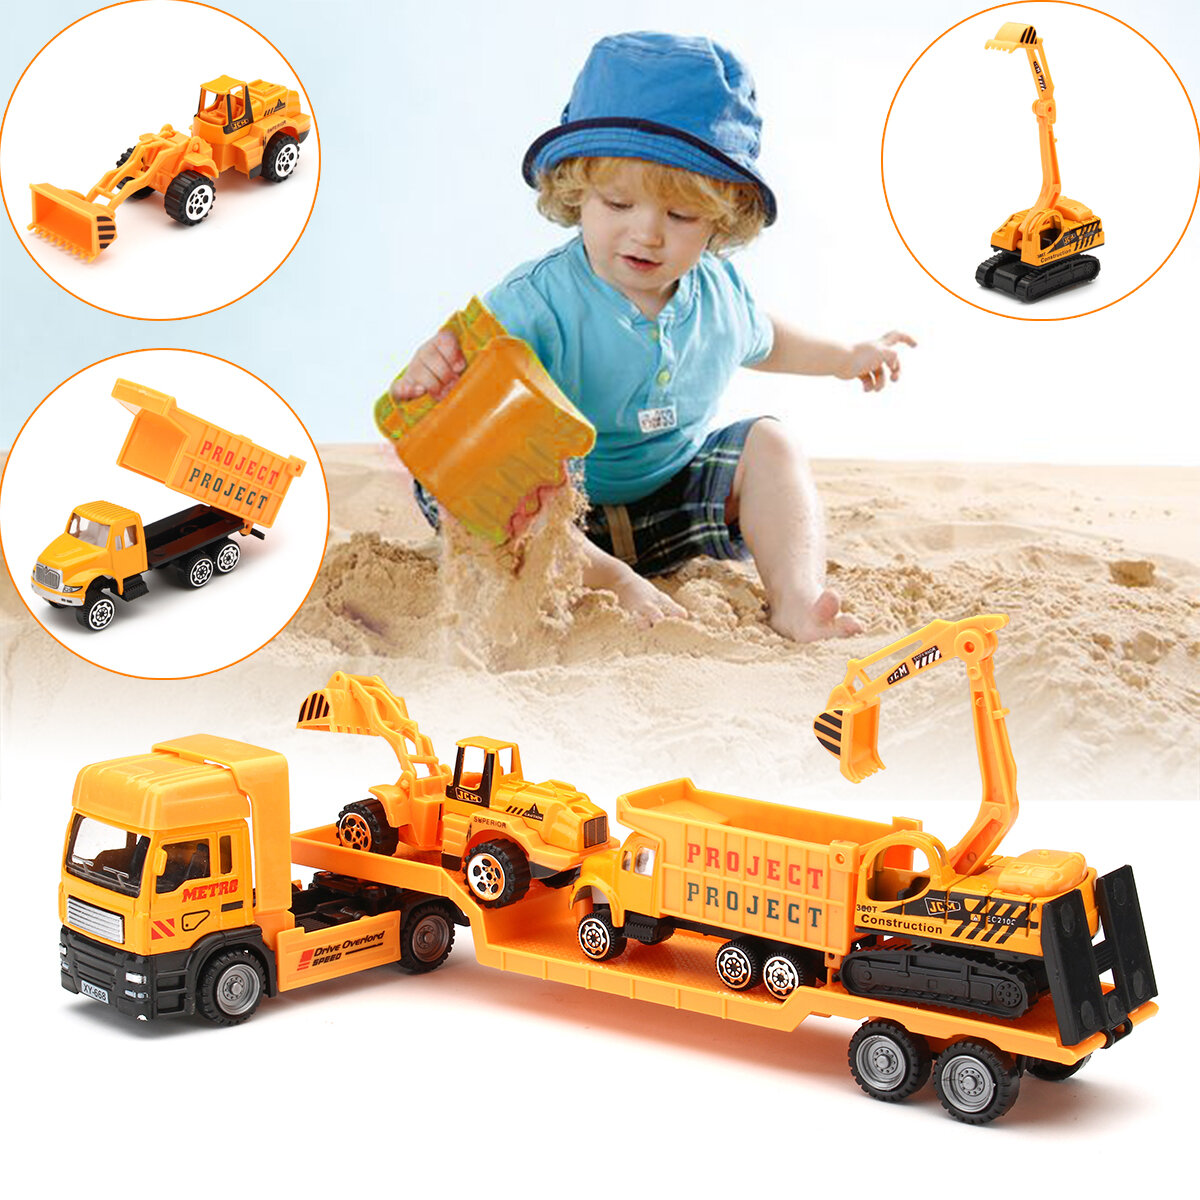 4 in 1 Kids Toy Recovery Vehic...